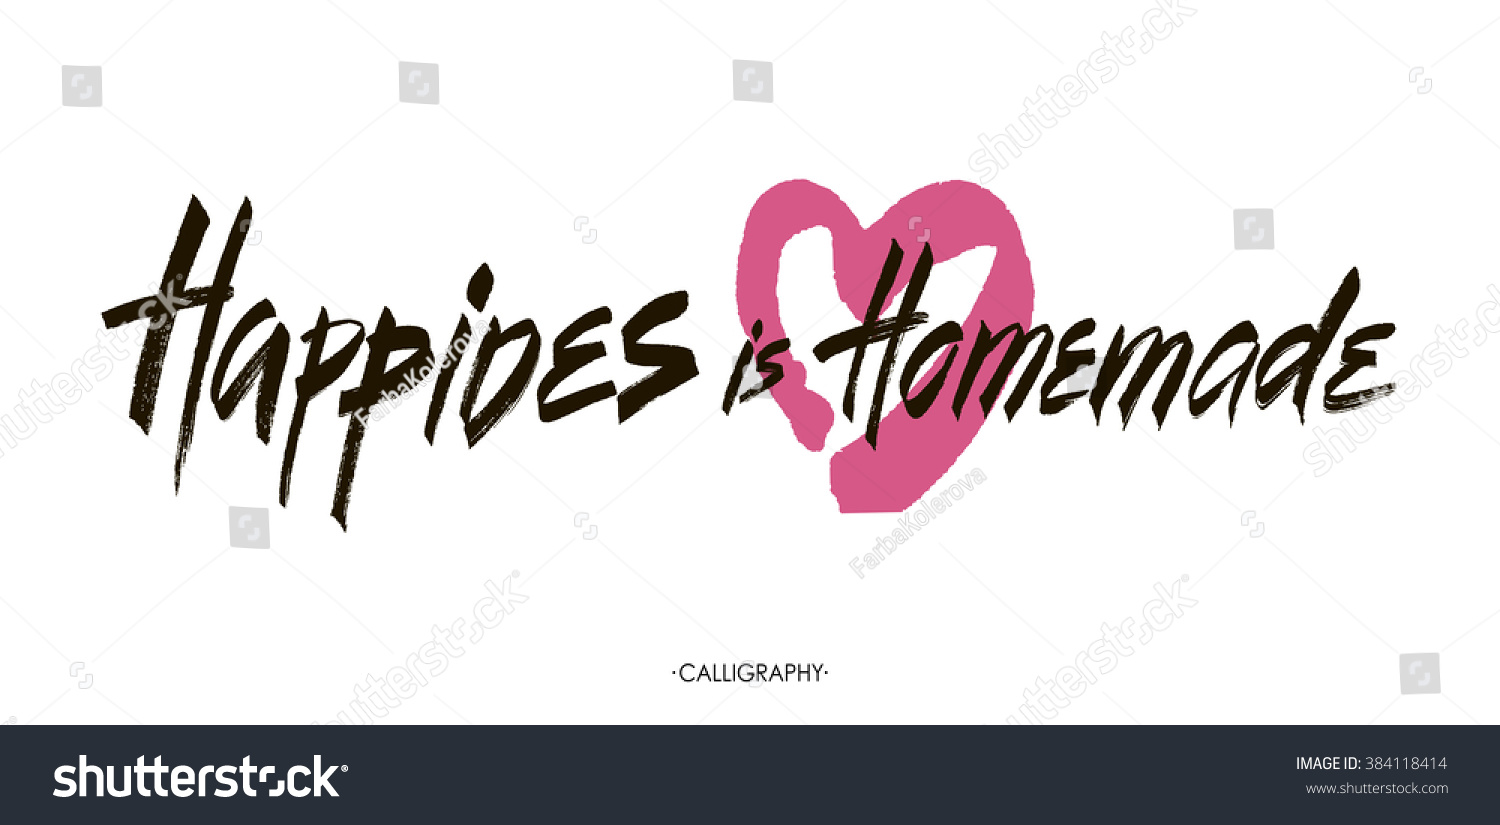 Inspirational Quotes On Happiness And Life Happiness Homemade Inspirational Quote About Life Stock Vector